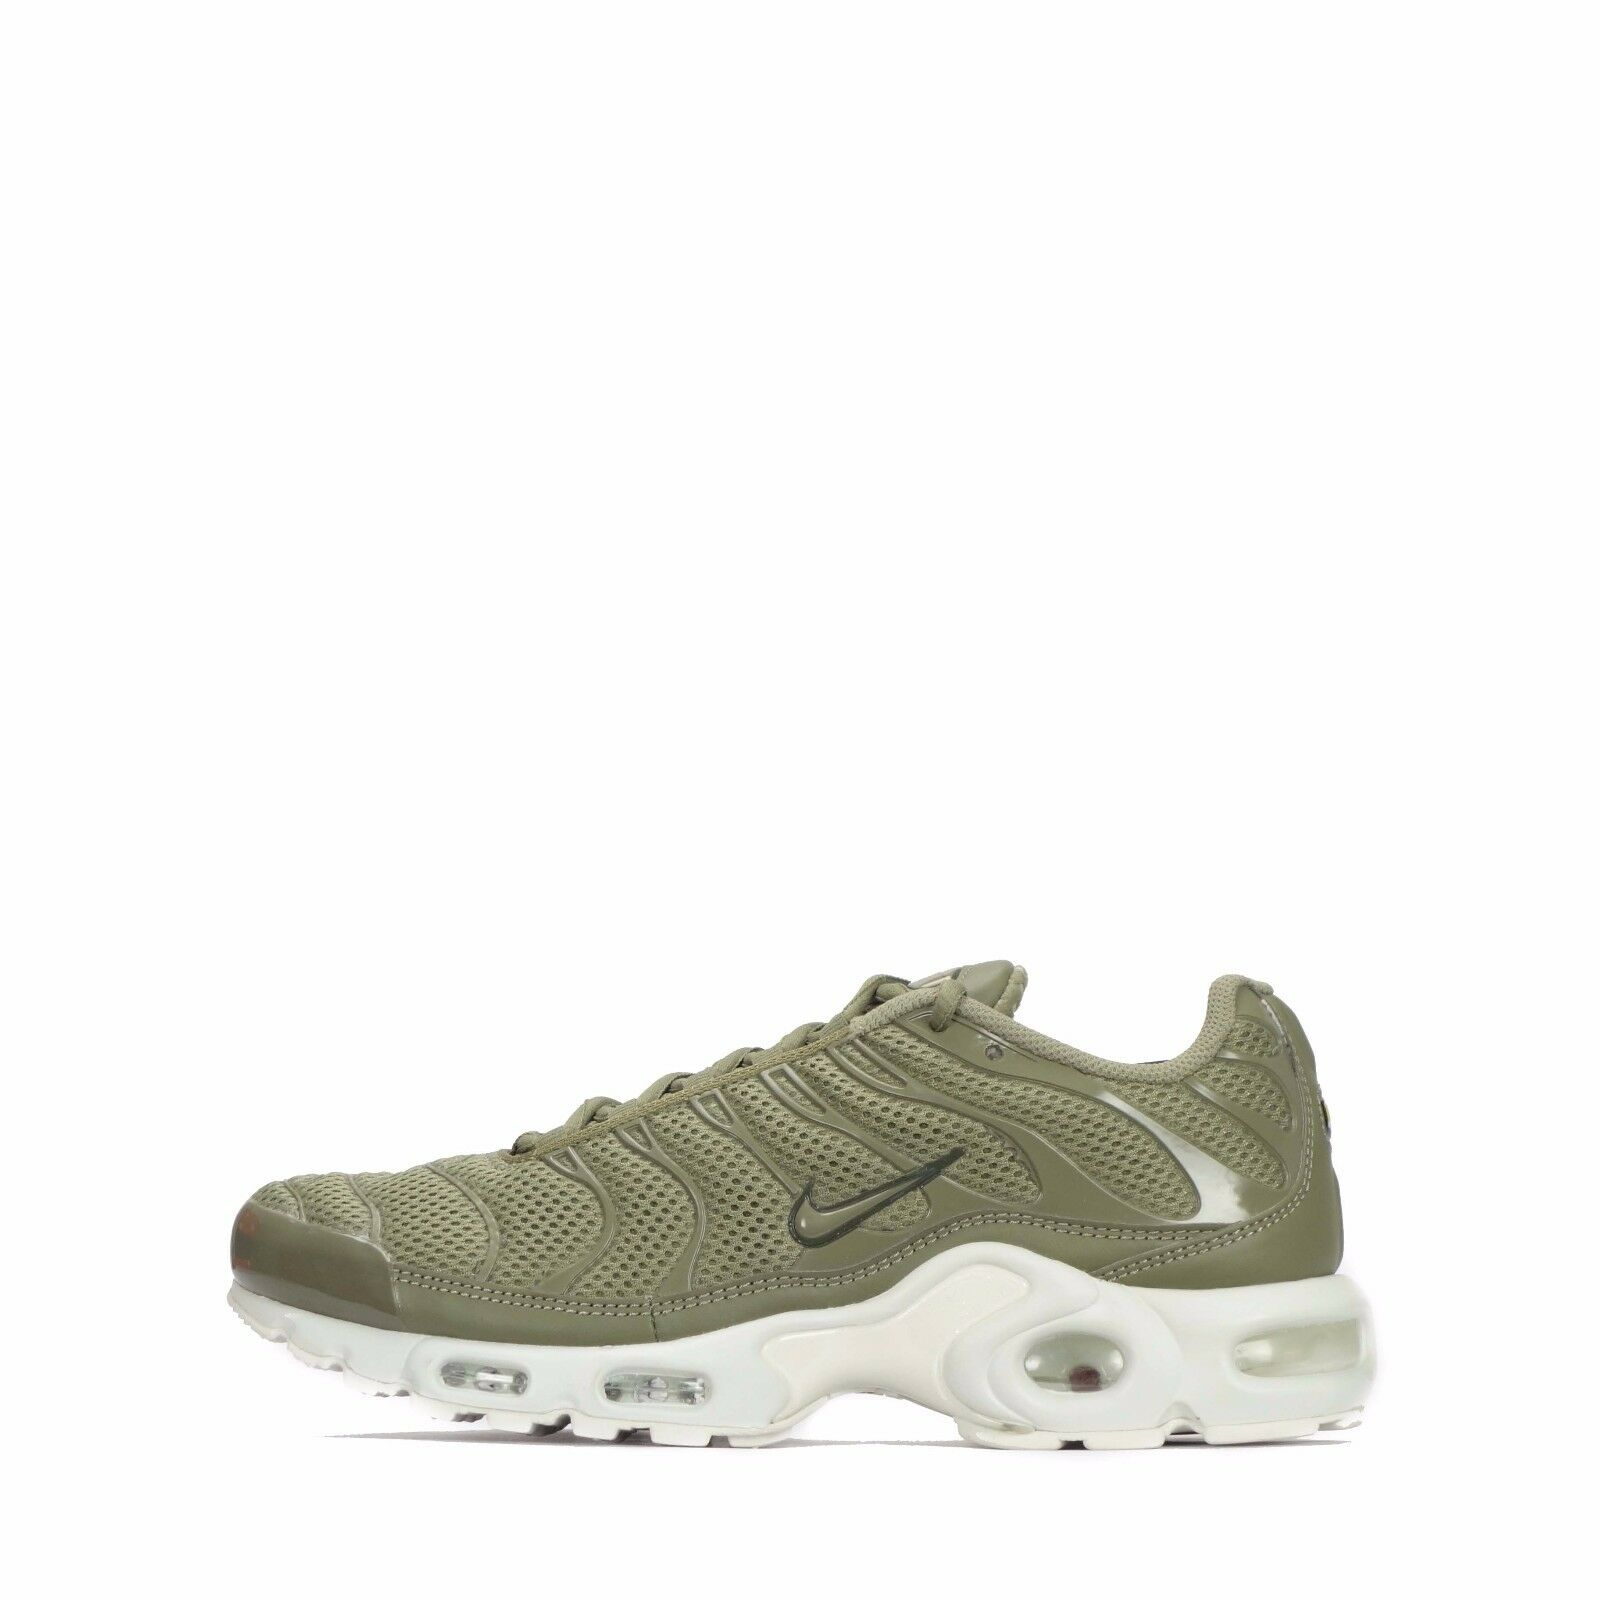 Nike Air Max Plus Breeze TN 1 Tuned homme chaussures Trooper/blanc  129.99